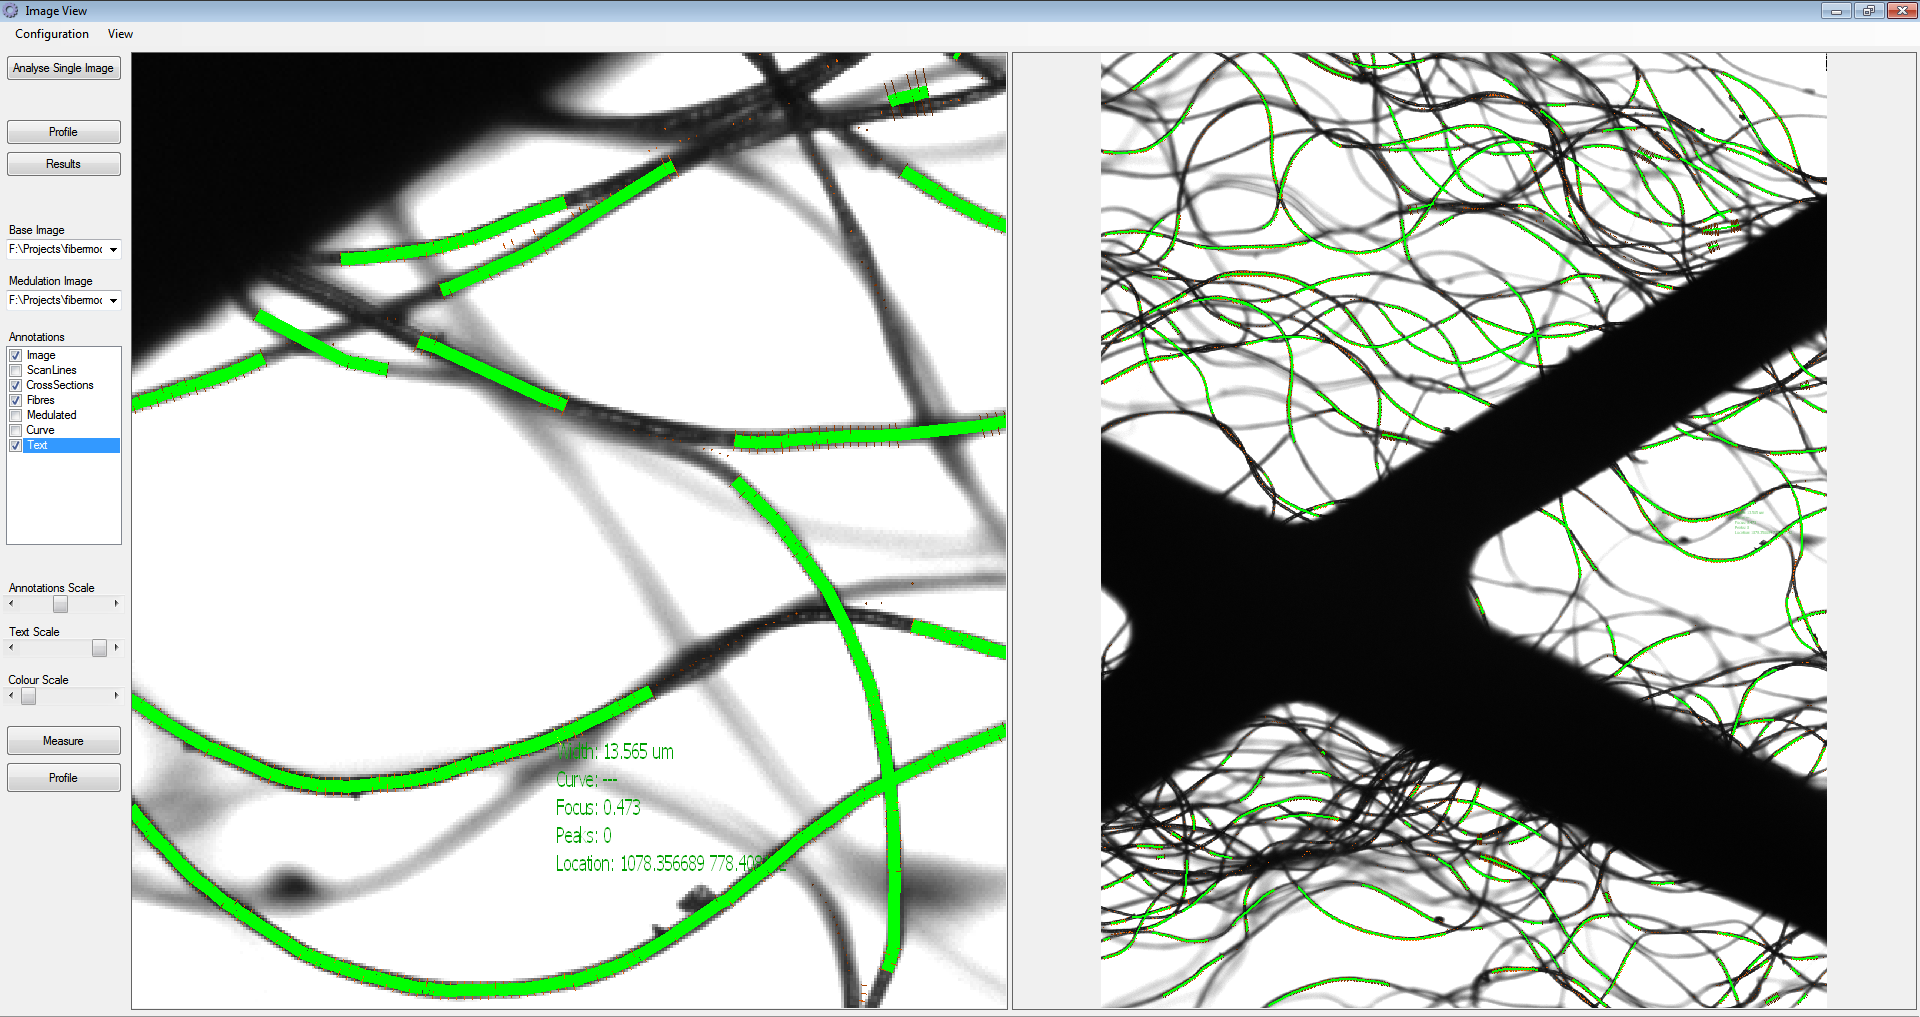 The dark lines are the wool, and green lines are where the software has identified a clear length of fibre to measure